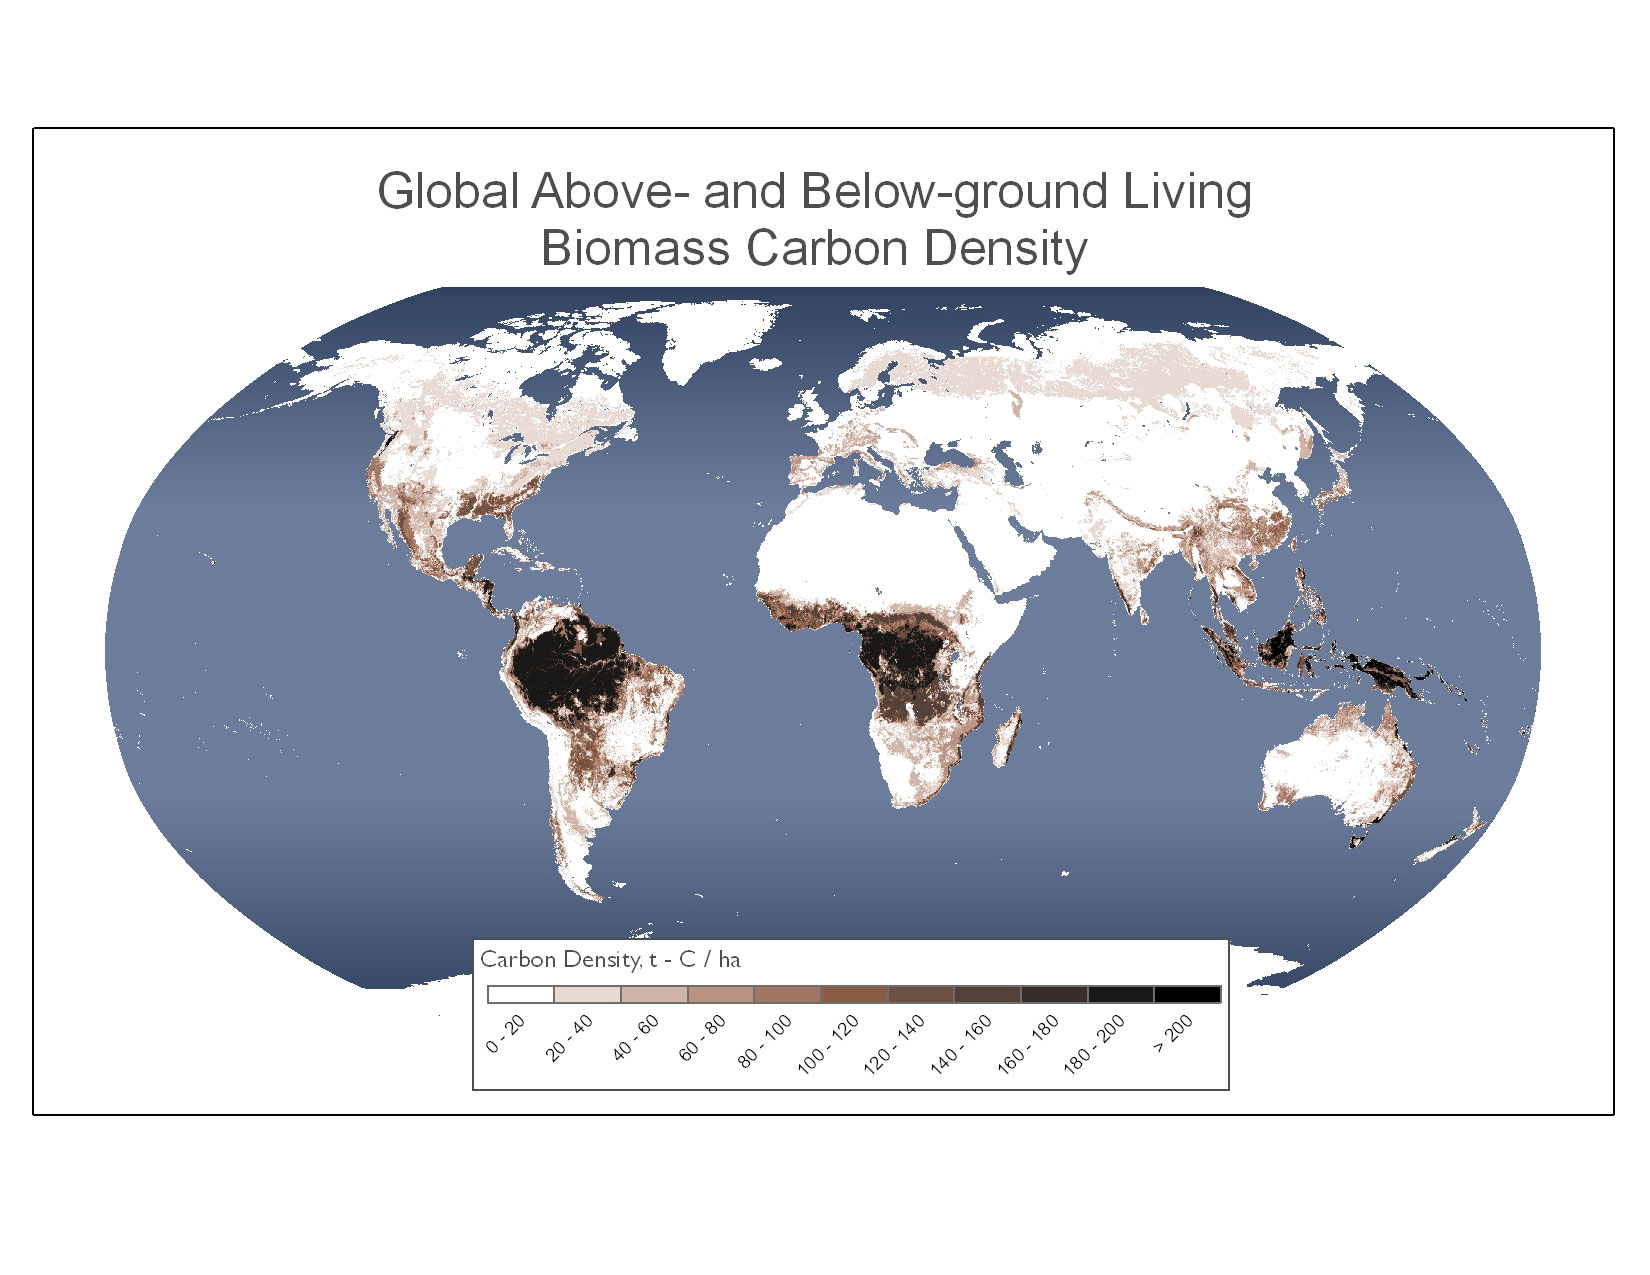 New ipcc tier 1 global biomass carbon map for the year 2000 gumiabroncs Choice Image